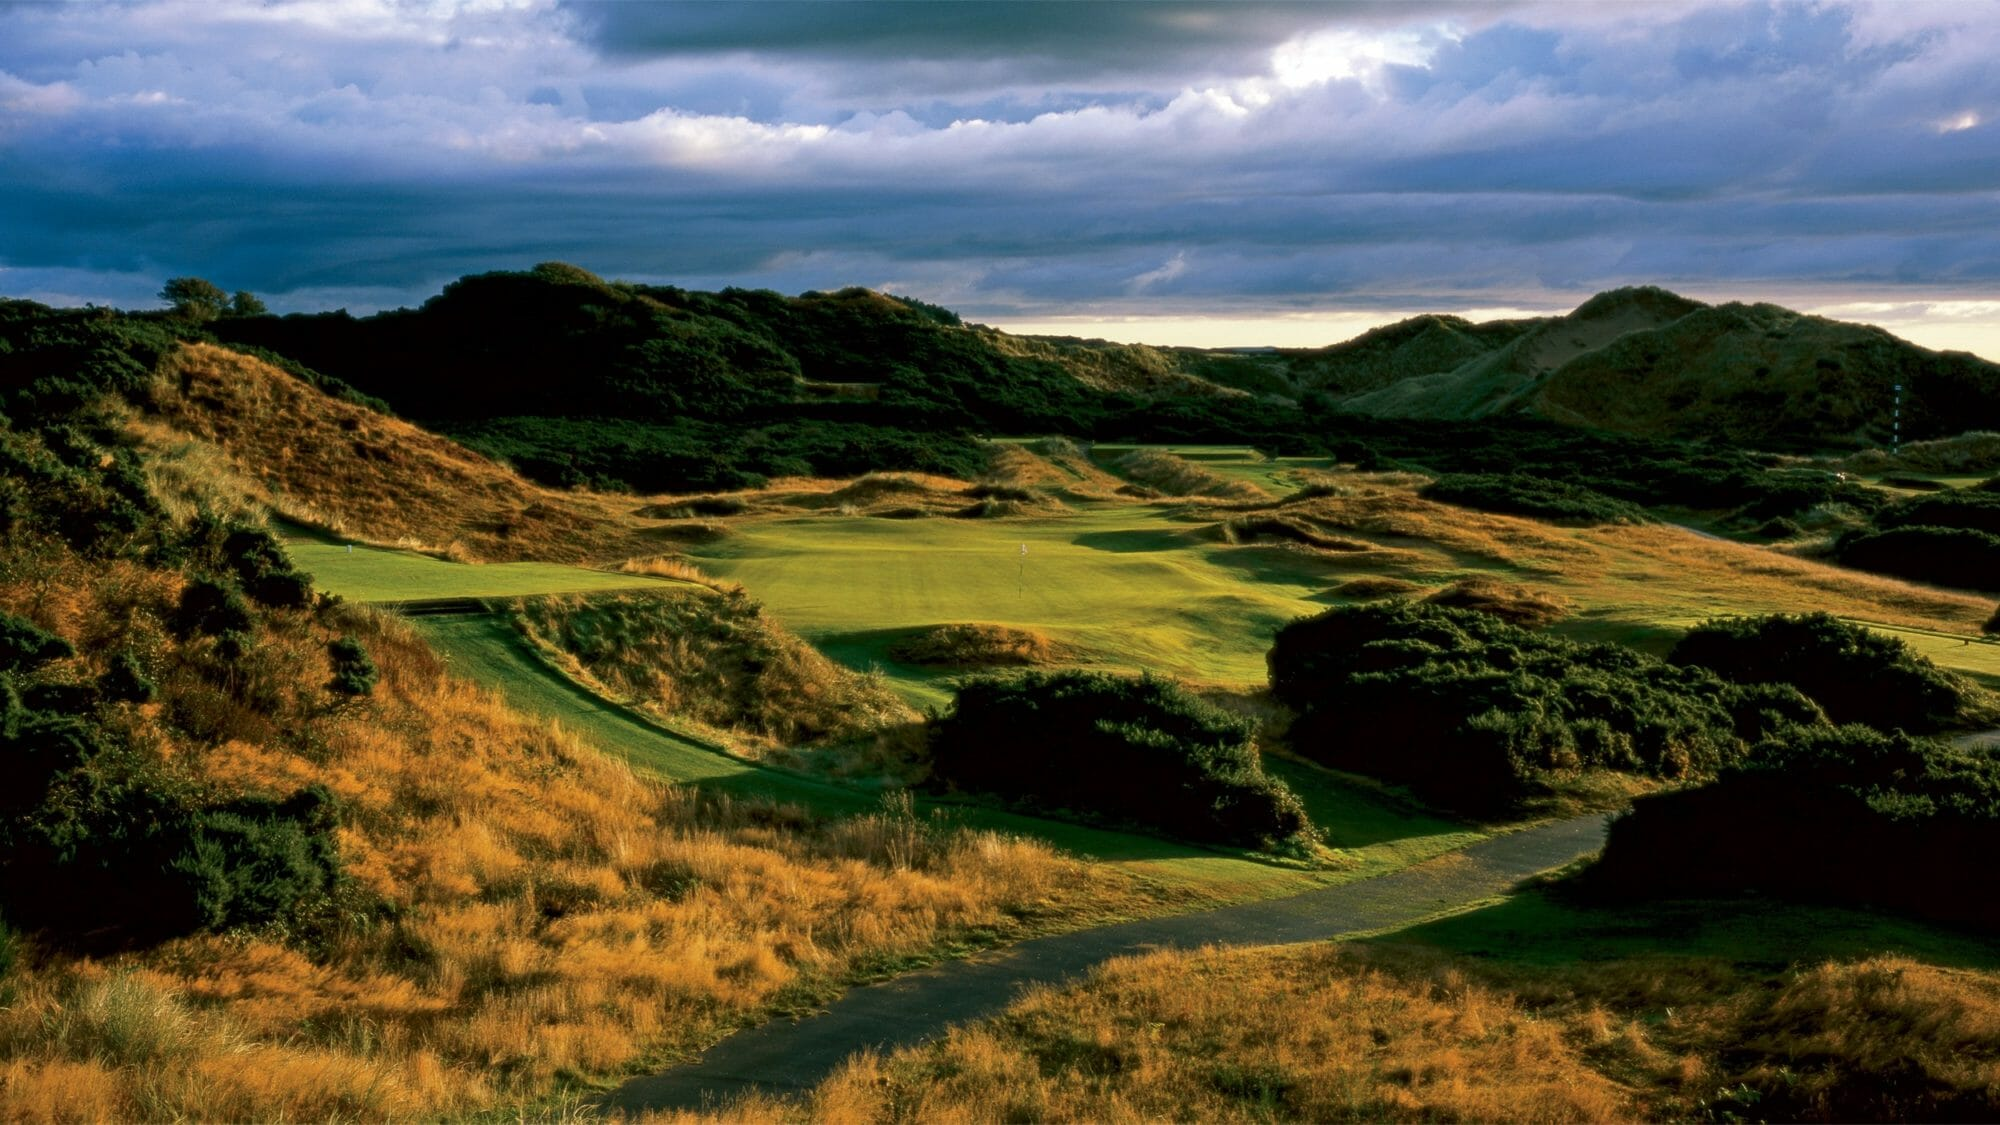 Image depicting the links golf course at Royal County Down Golf Club, Northern Ireland